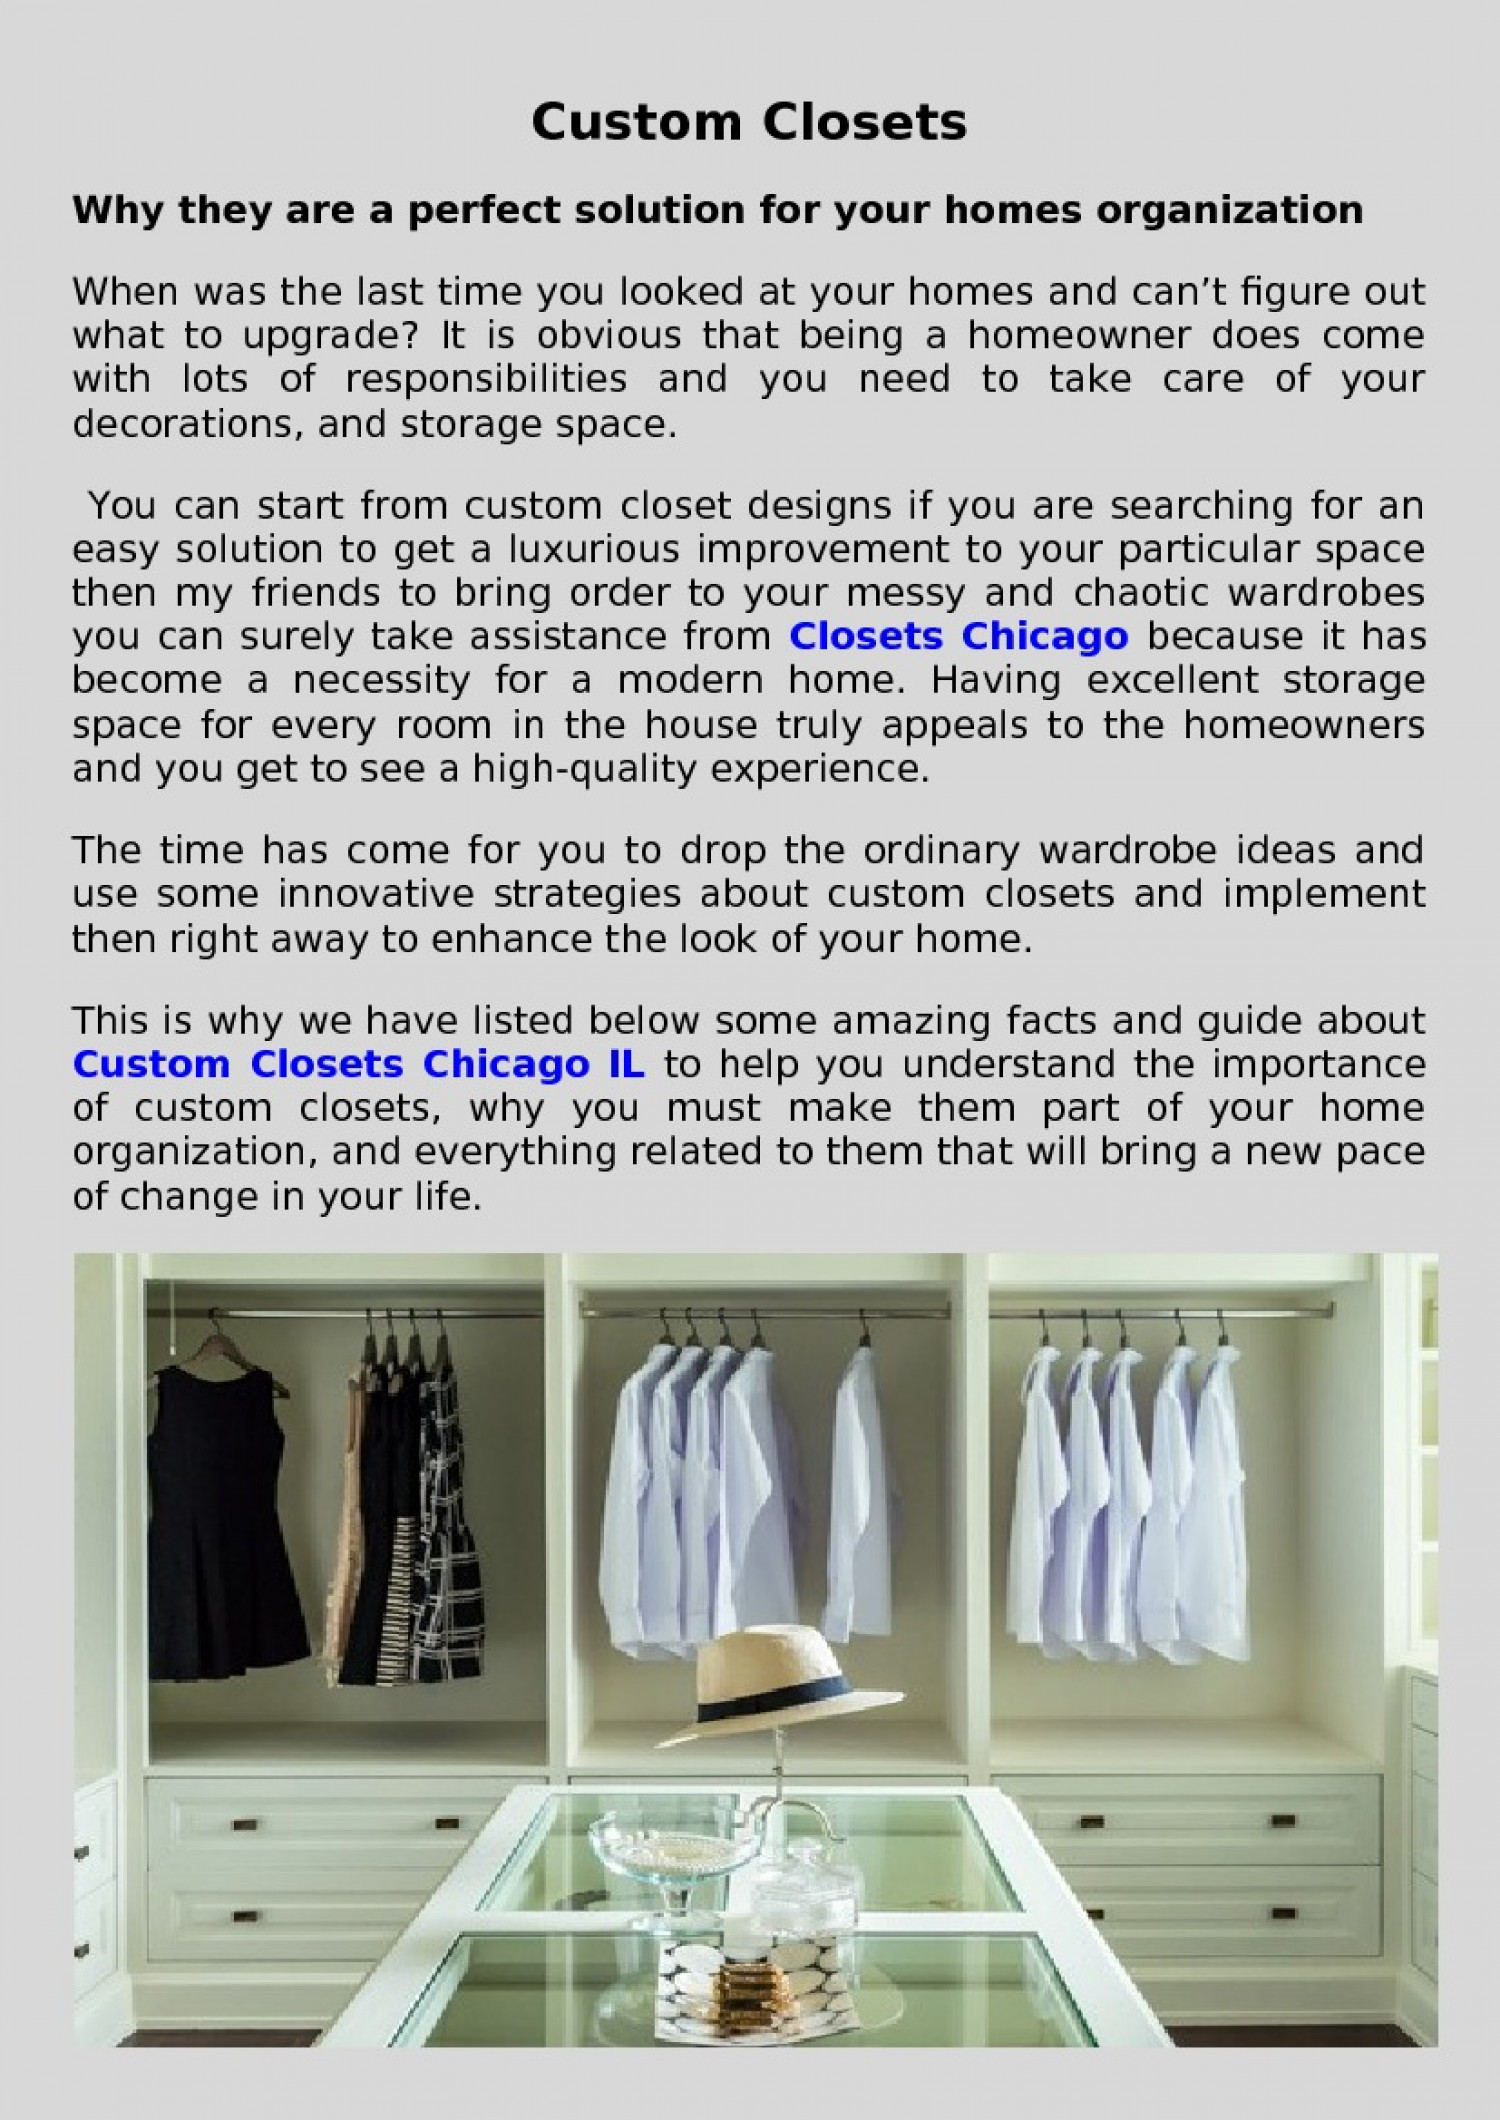 custom closets for your homes organization in chicago Infographic